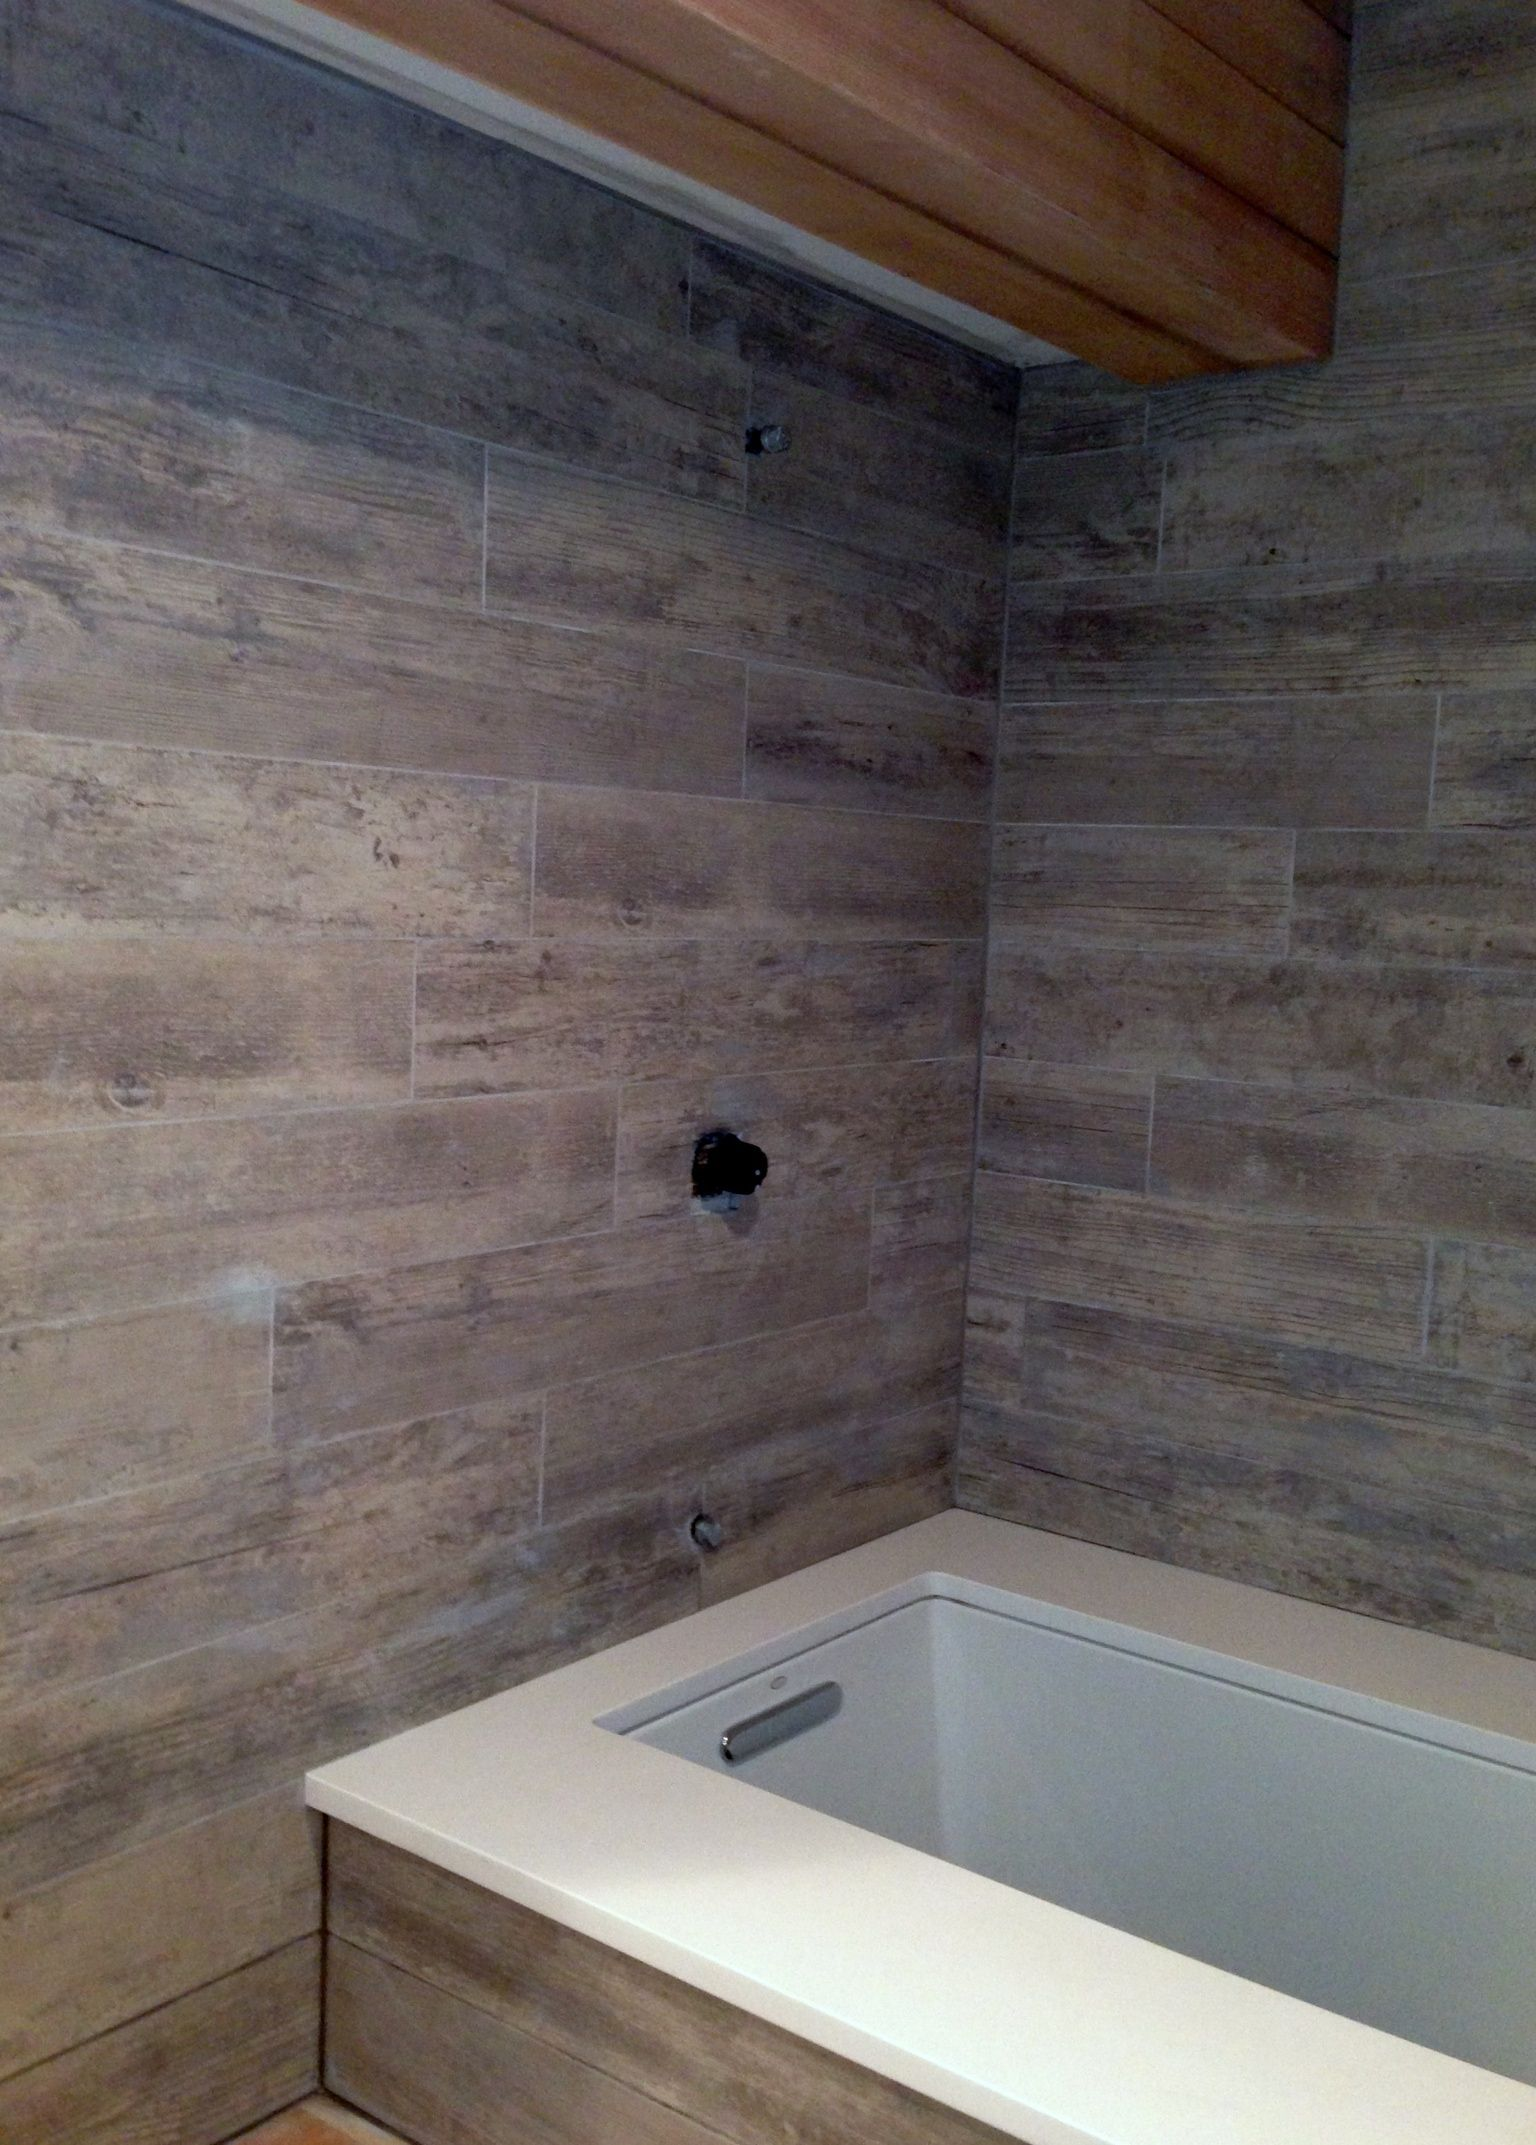 The new wood grain tile that I selected goes up for the shower